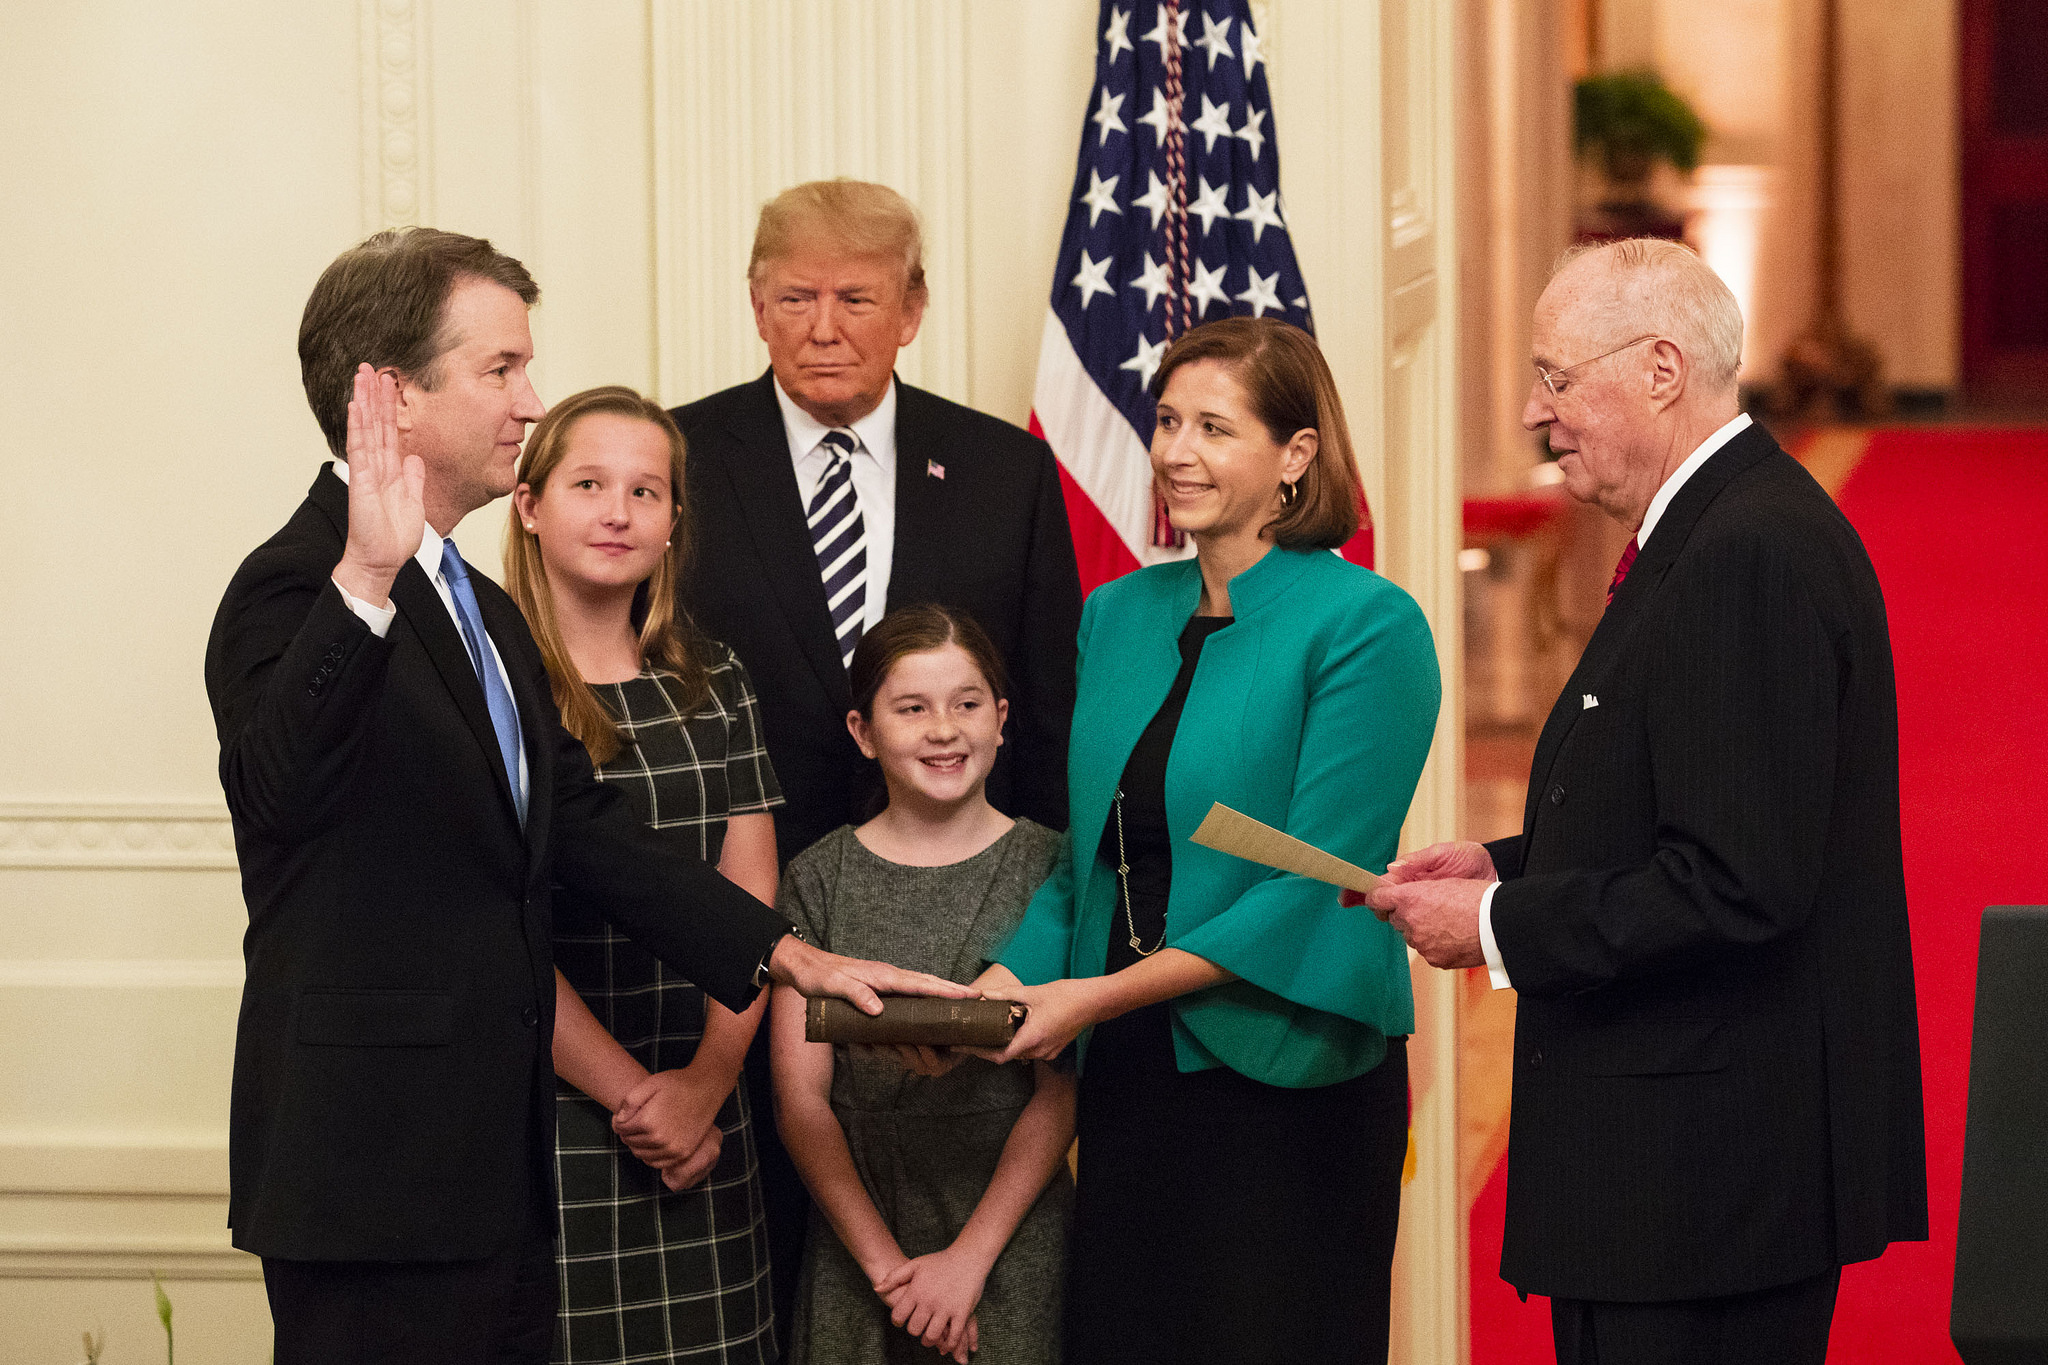 The Kavanaugh Confirmation & Its Place in American History